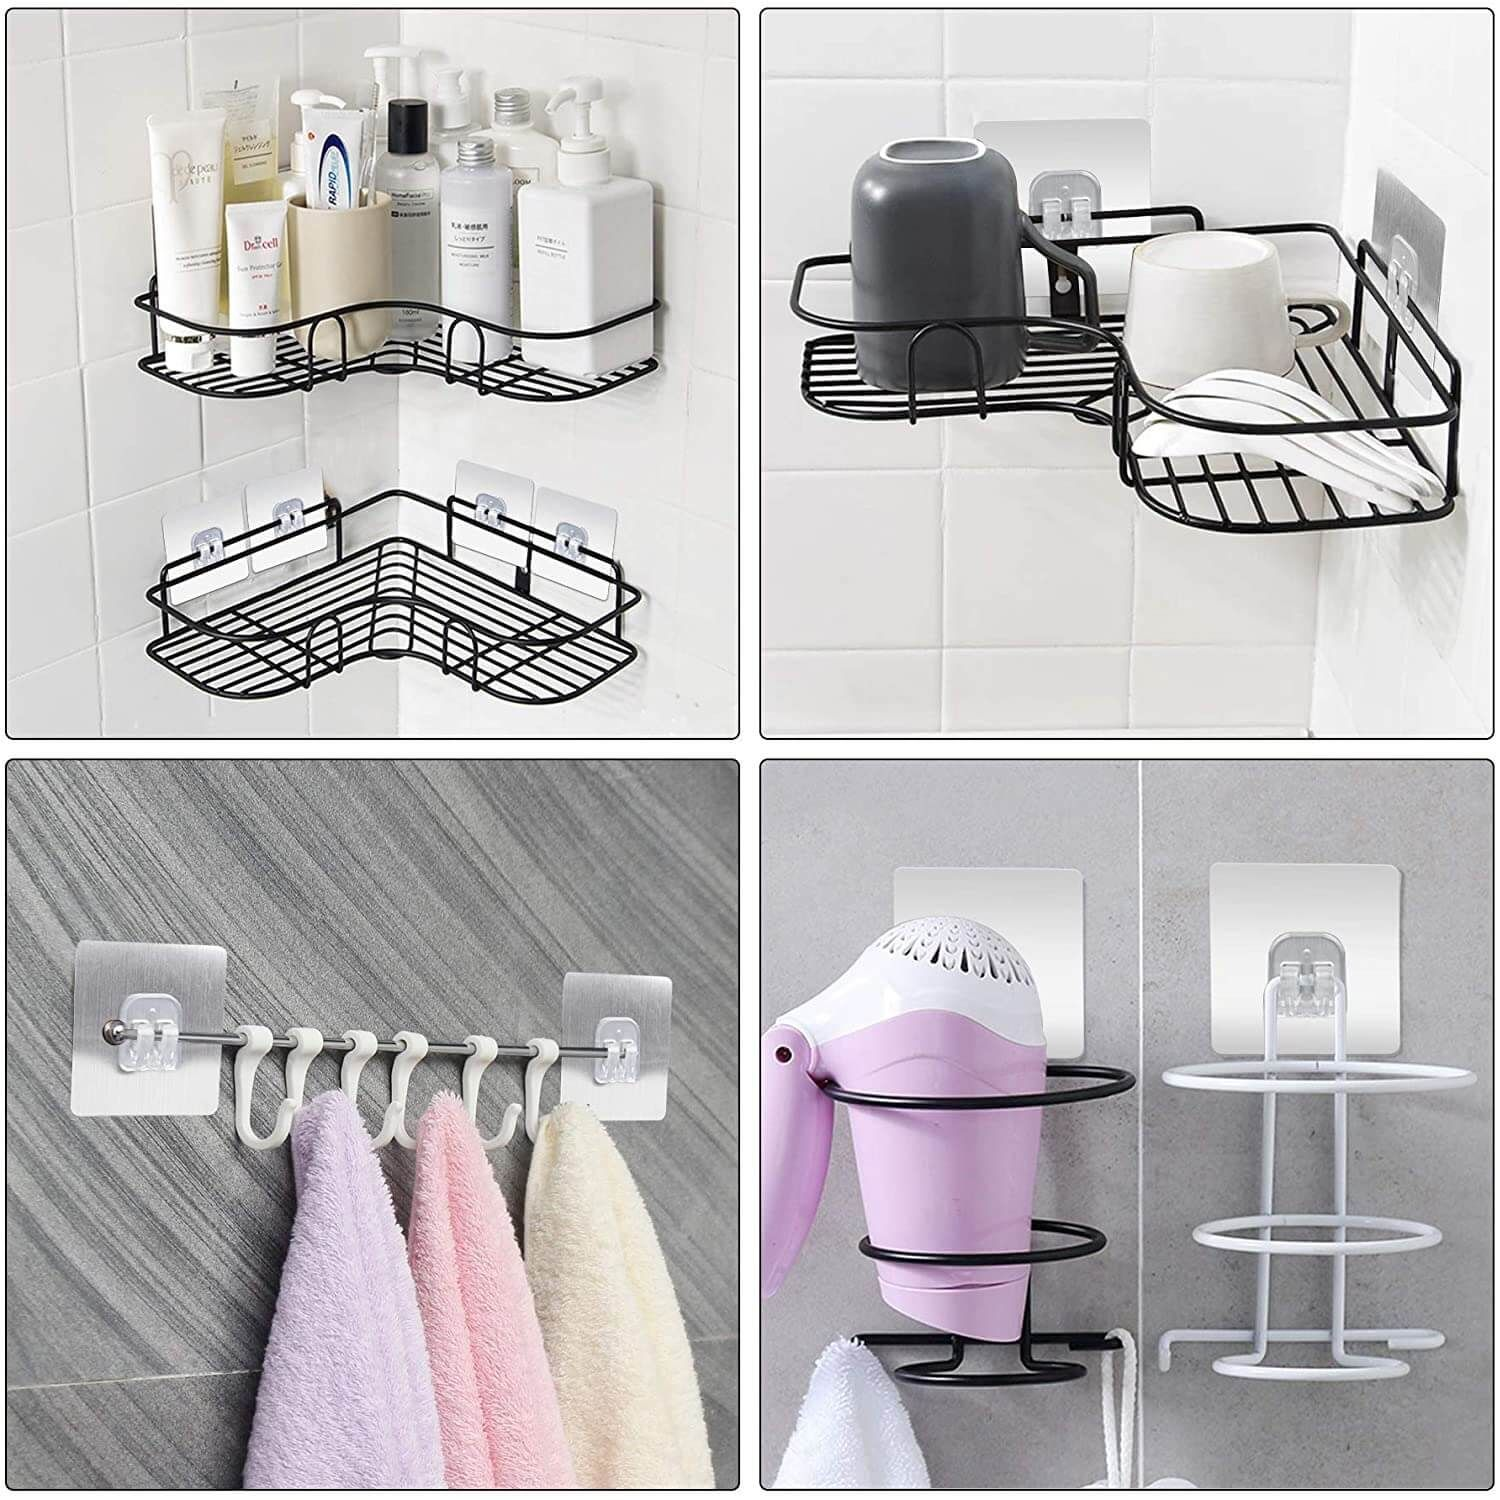 Photo of Adhesive Wall Hooks For Shower Caddy (1 Set)